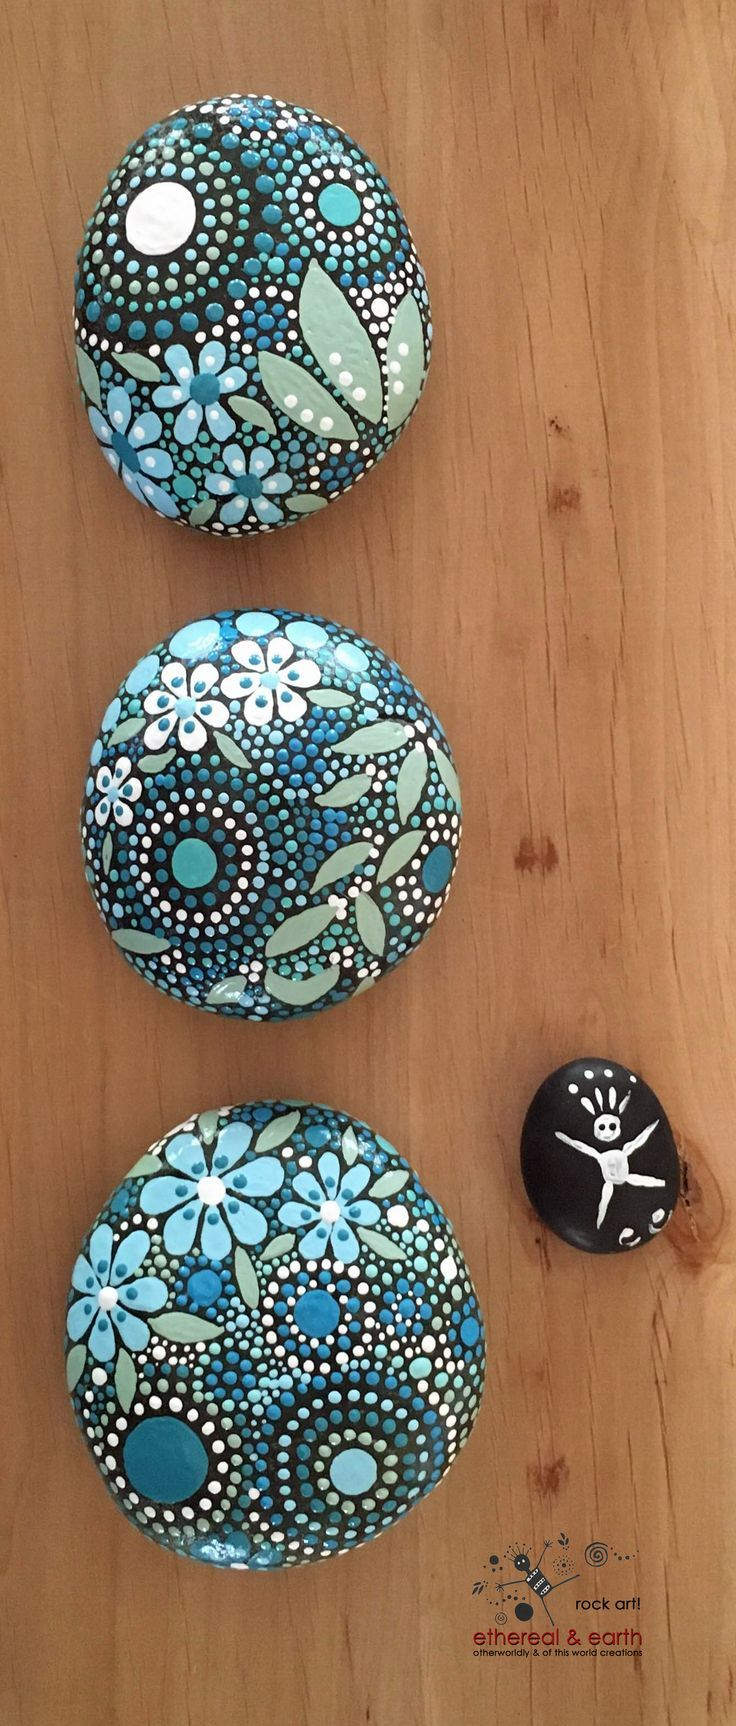 Home Decor Photos Free home decor ideas unique home decor free people blog Painted Rocks Mandala Inspired Design Natural Home Decor Rock Art Free Us Shipping Unique Gift Blue Luminescence Collection Trio 31